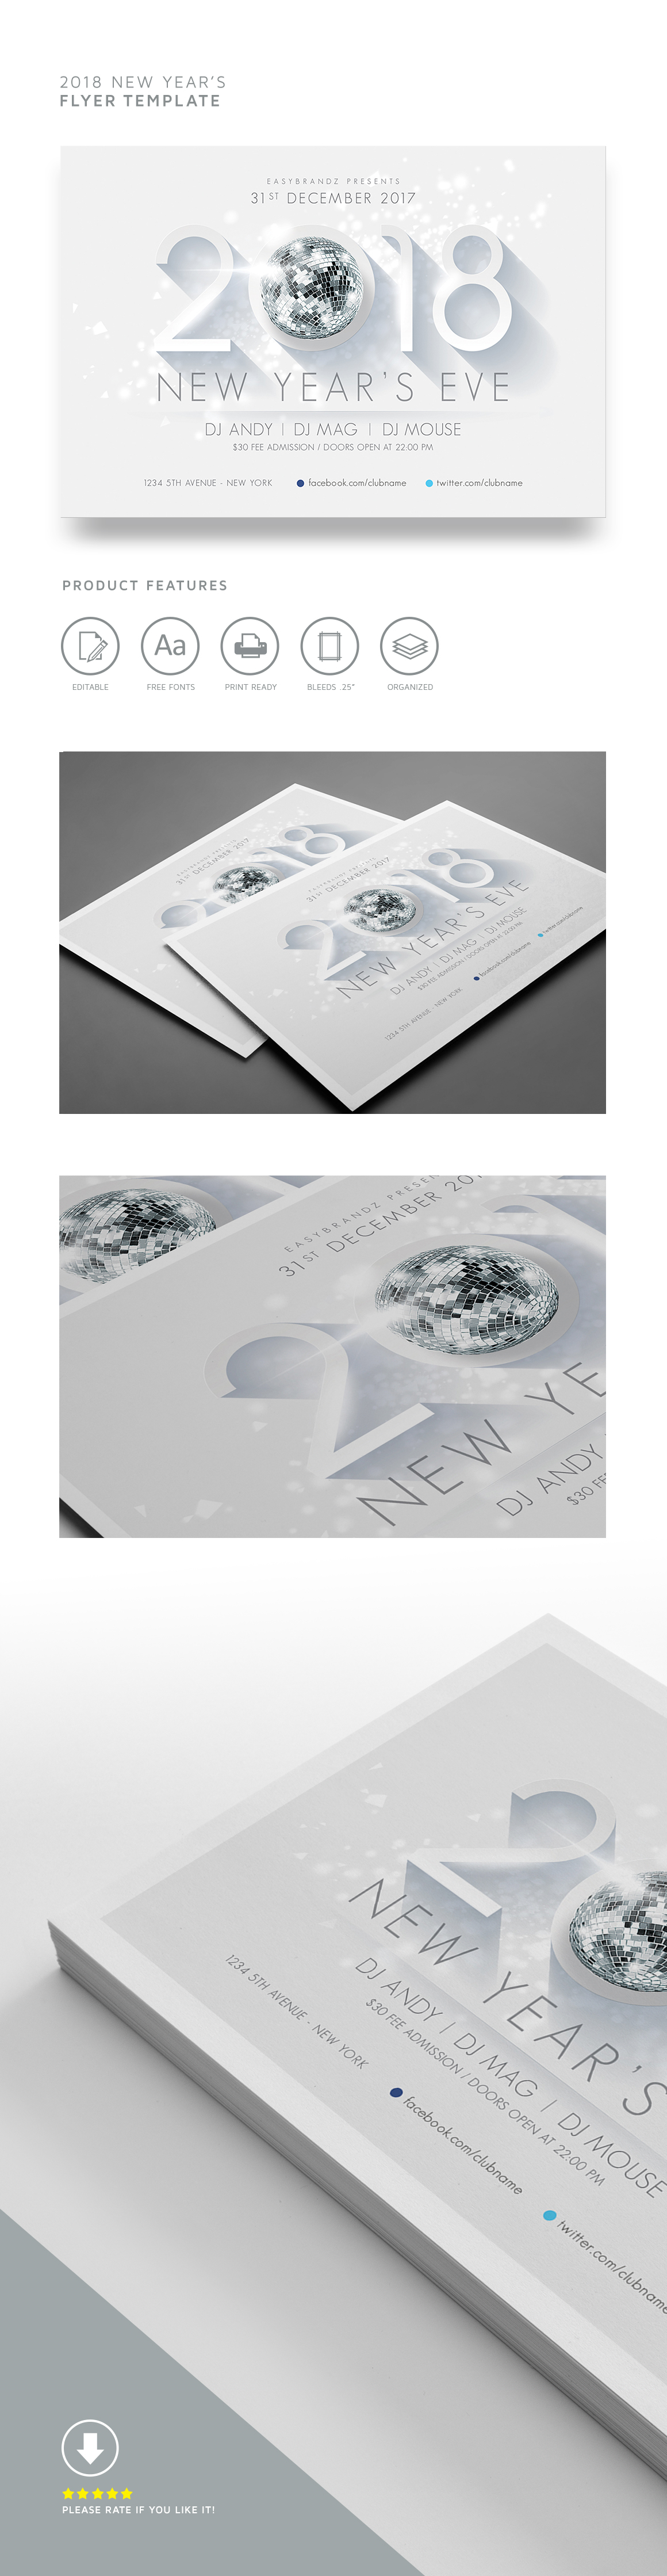 2014 New Years Flyer Template